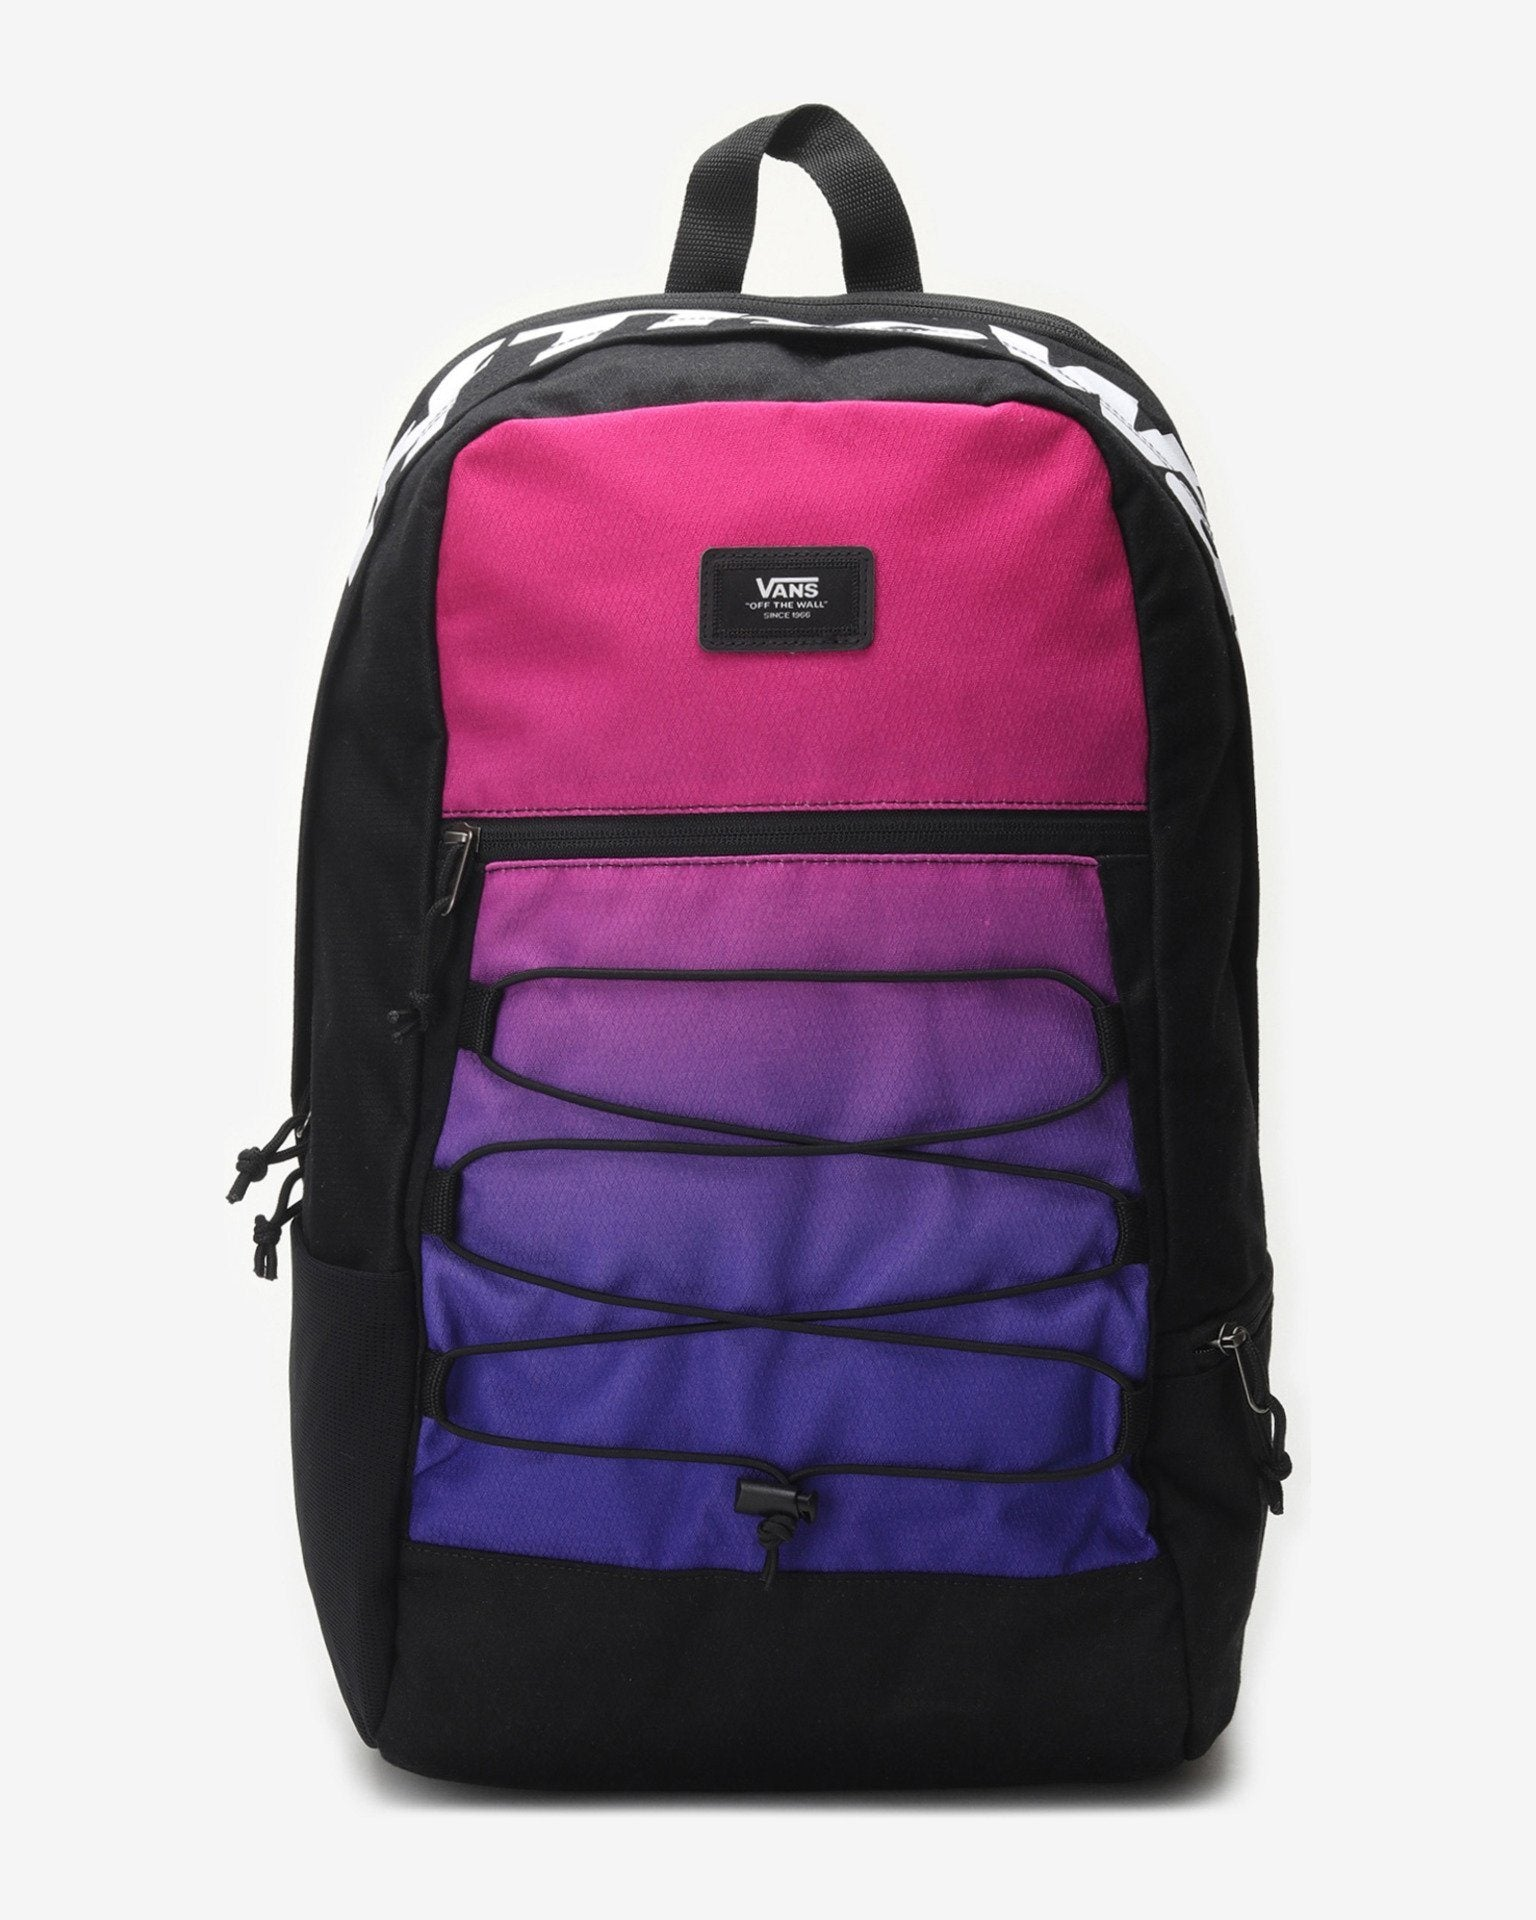 Vans Snag Plus Backpack - Heliotrope/Black